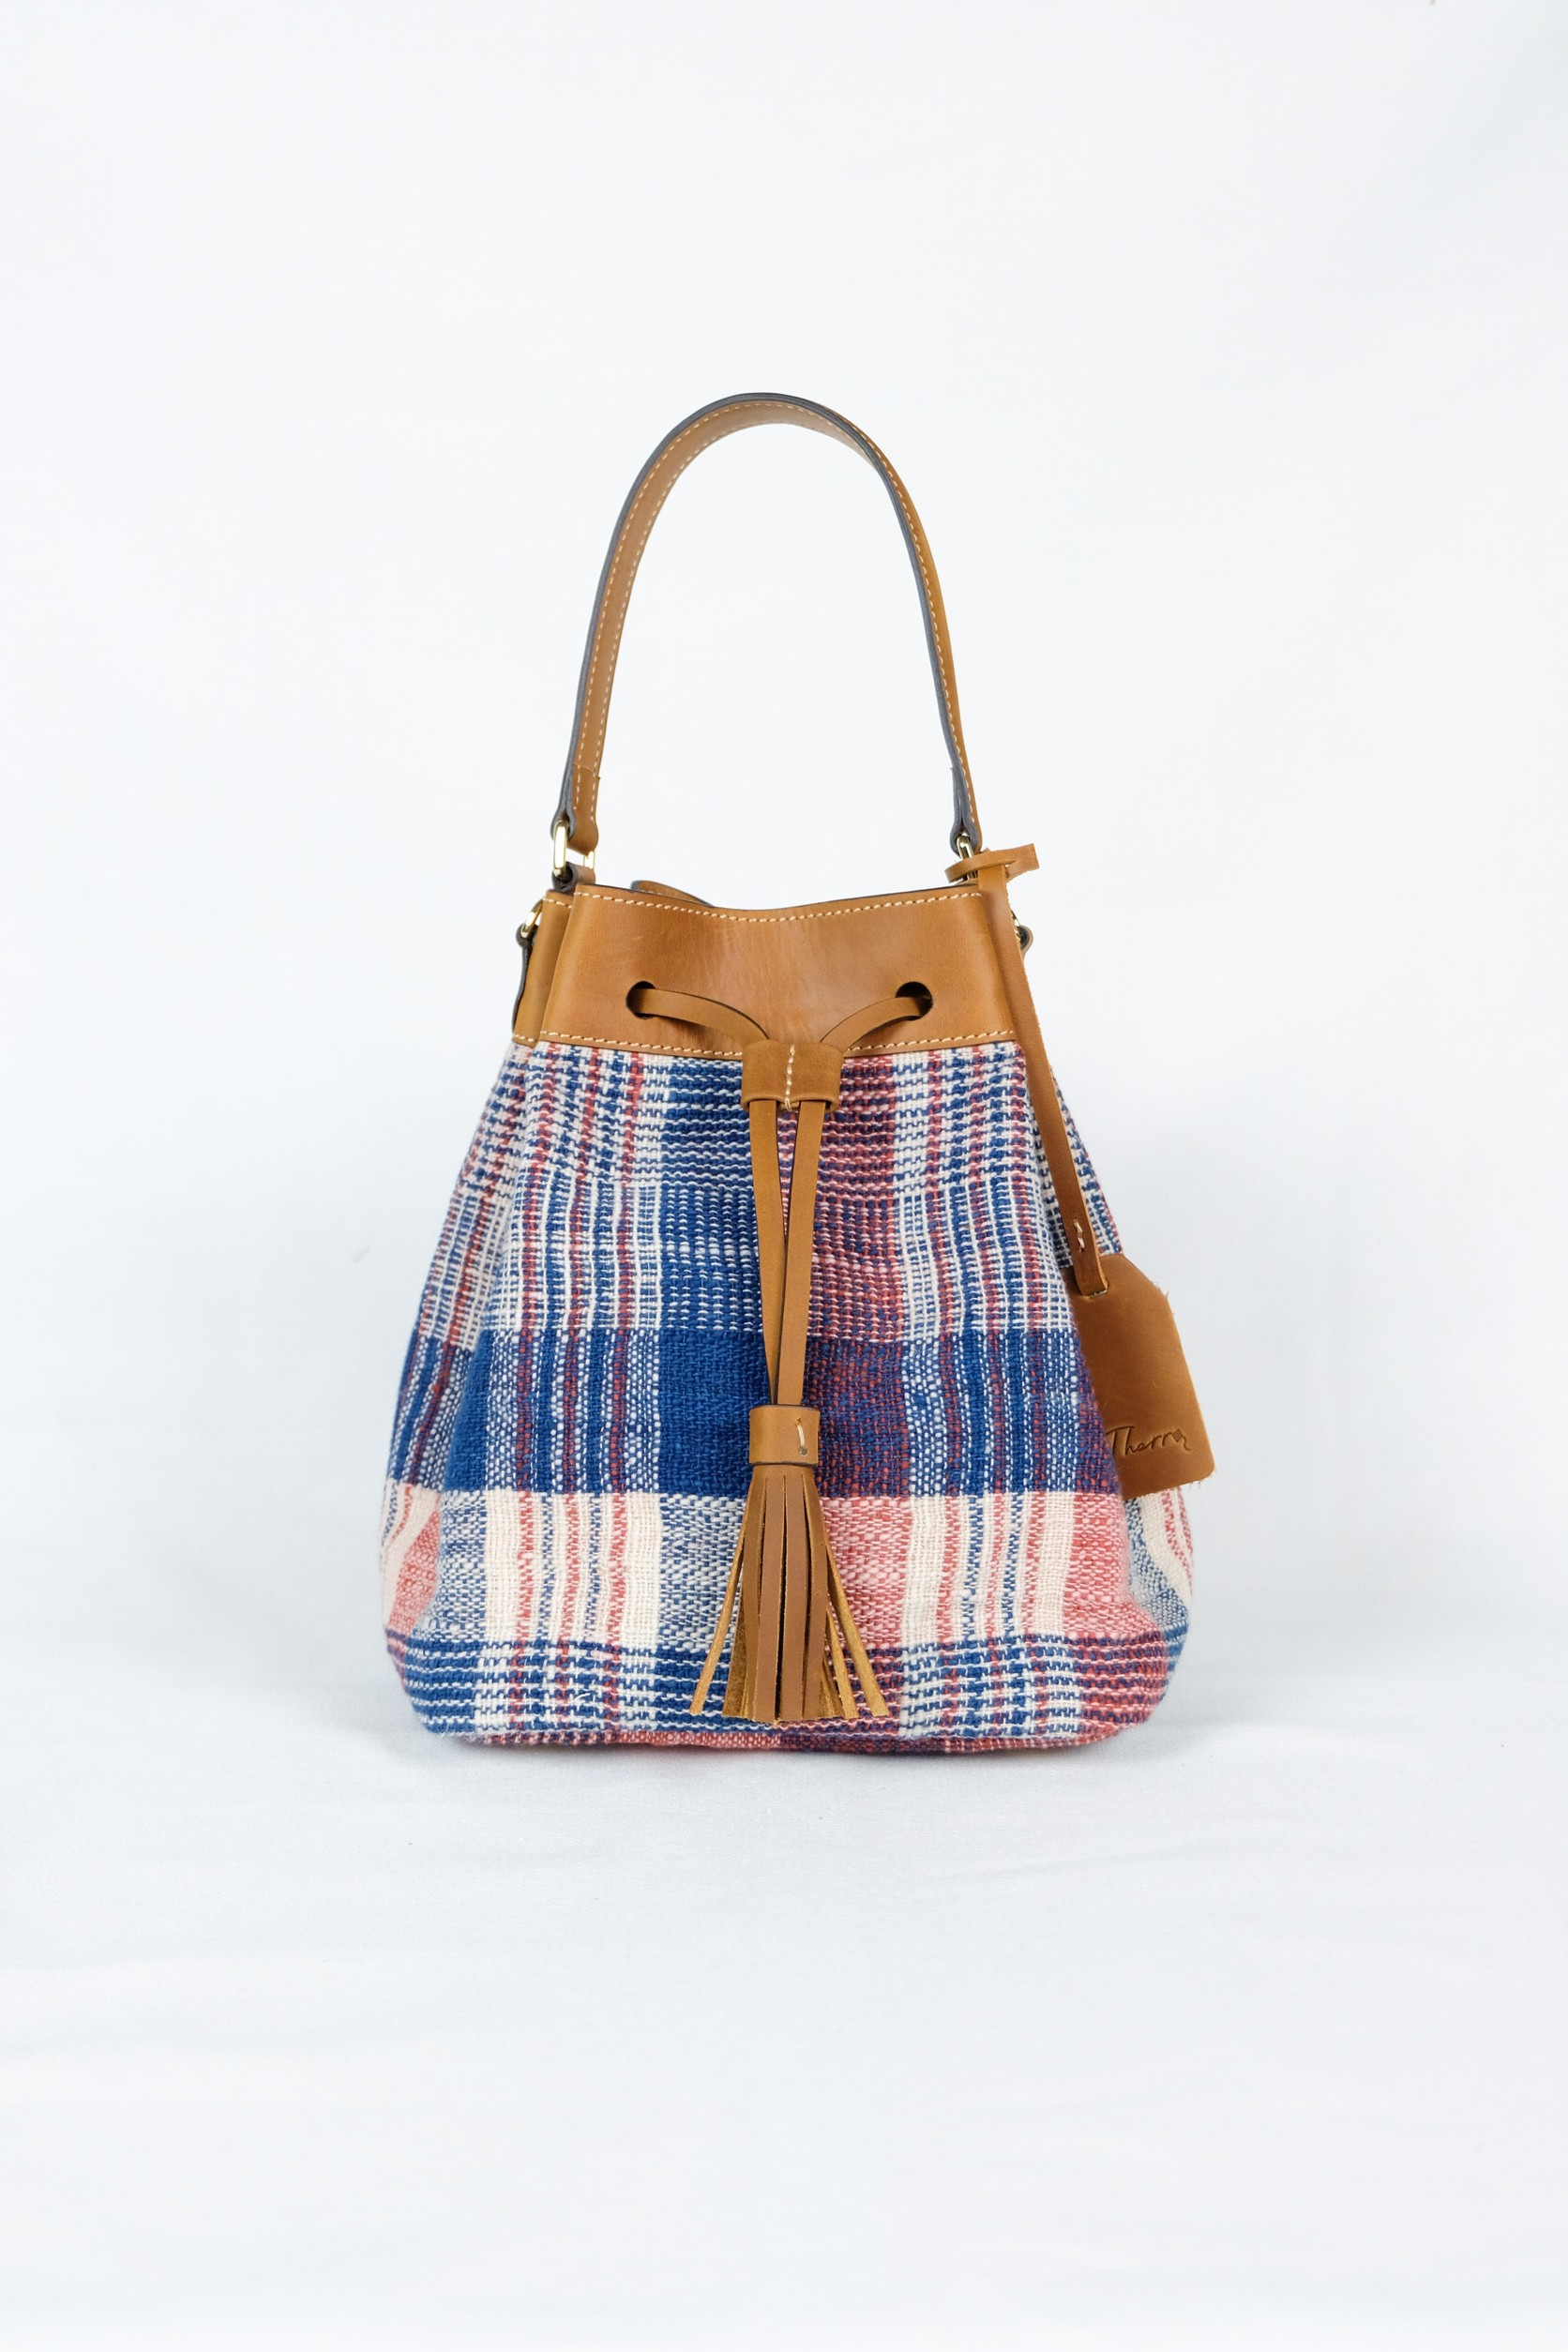 Little Sandy bag in red